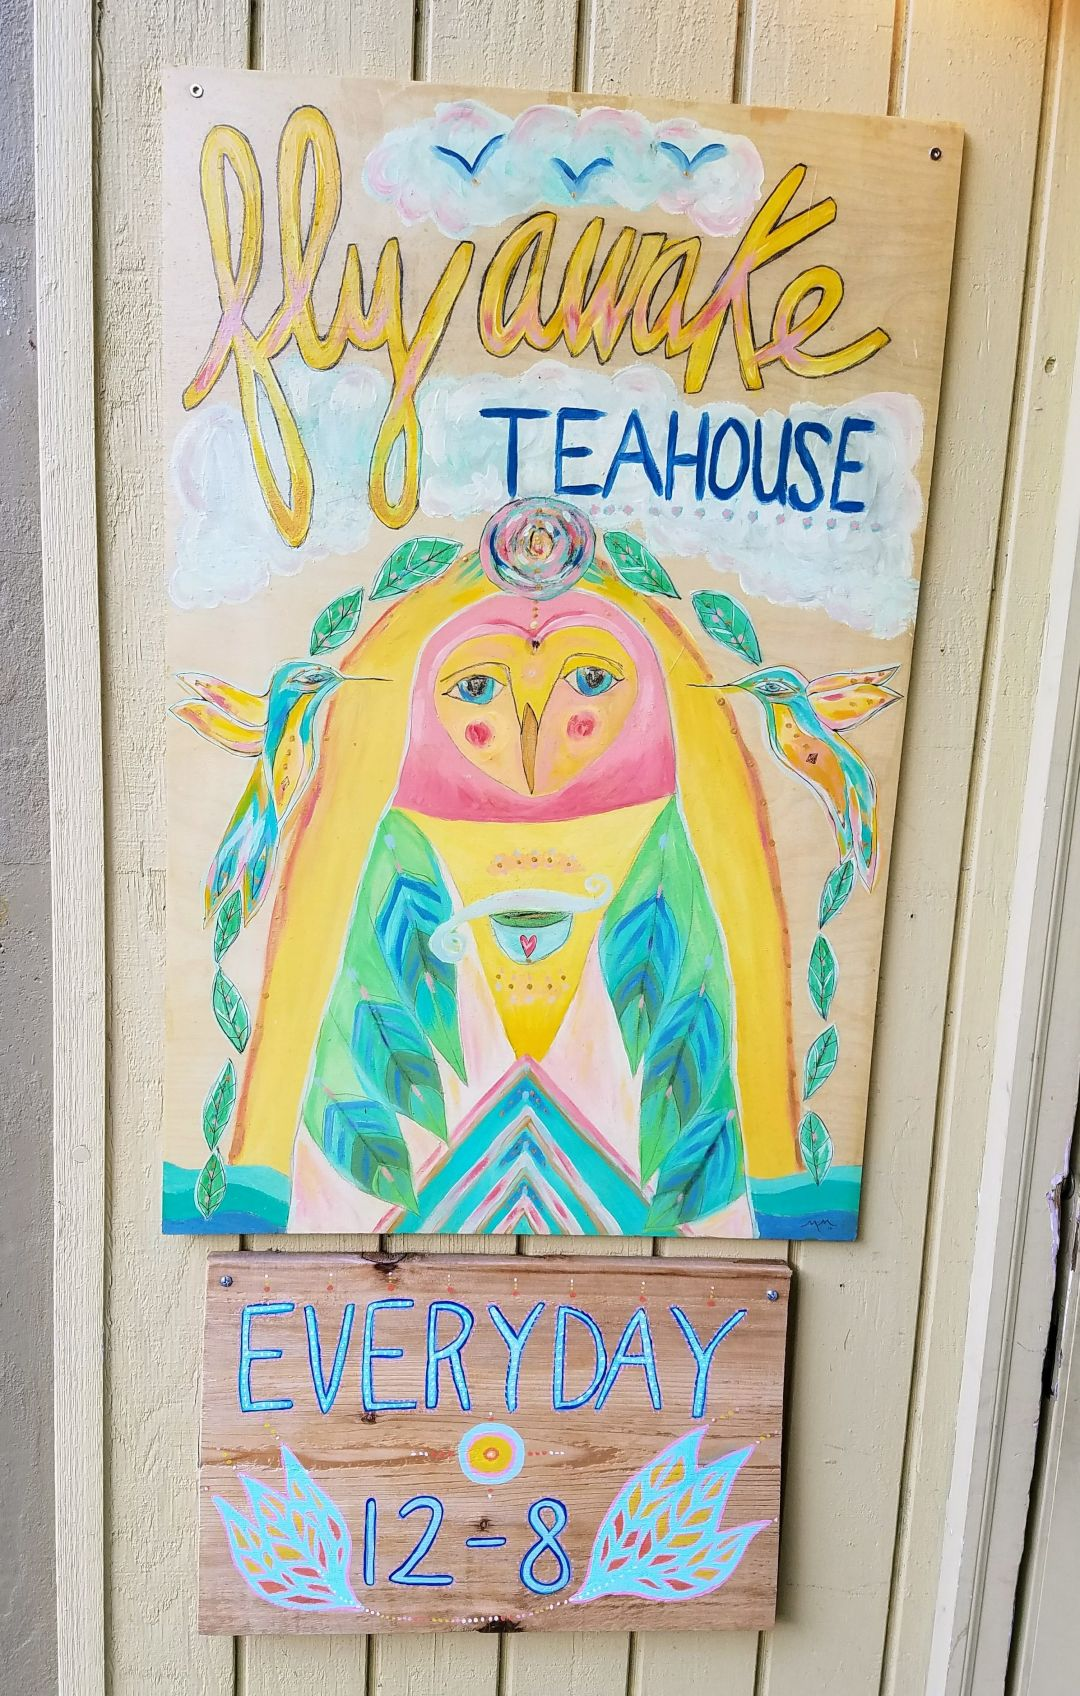 Fly awake teahouse humuyc